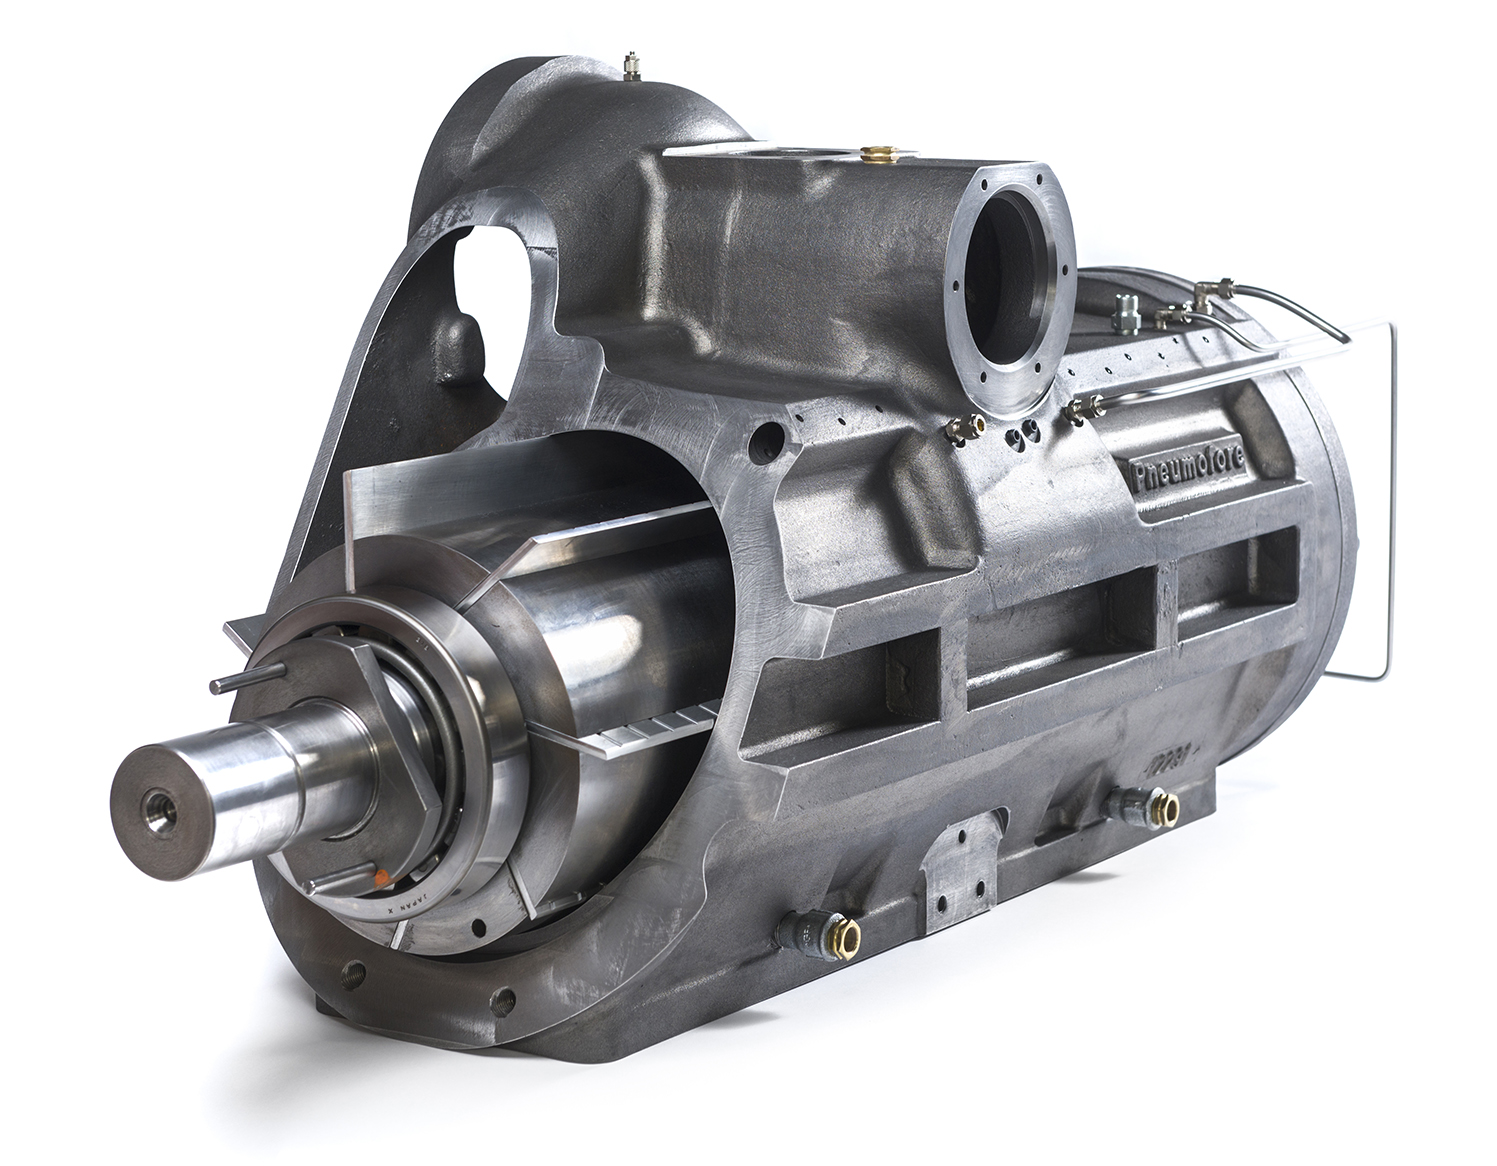 Pneumofore Rotary Vane Air End